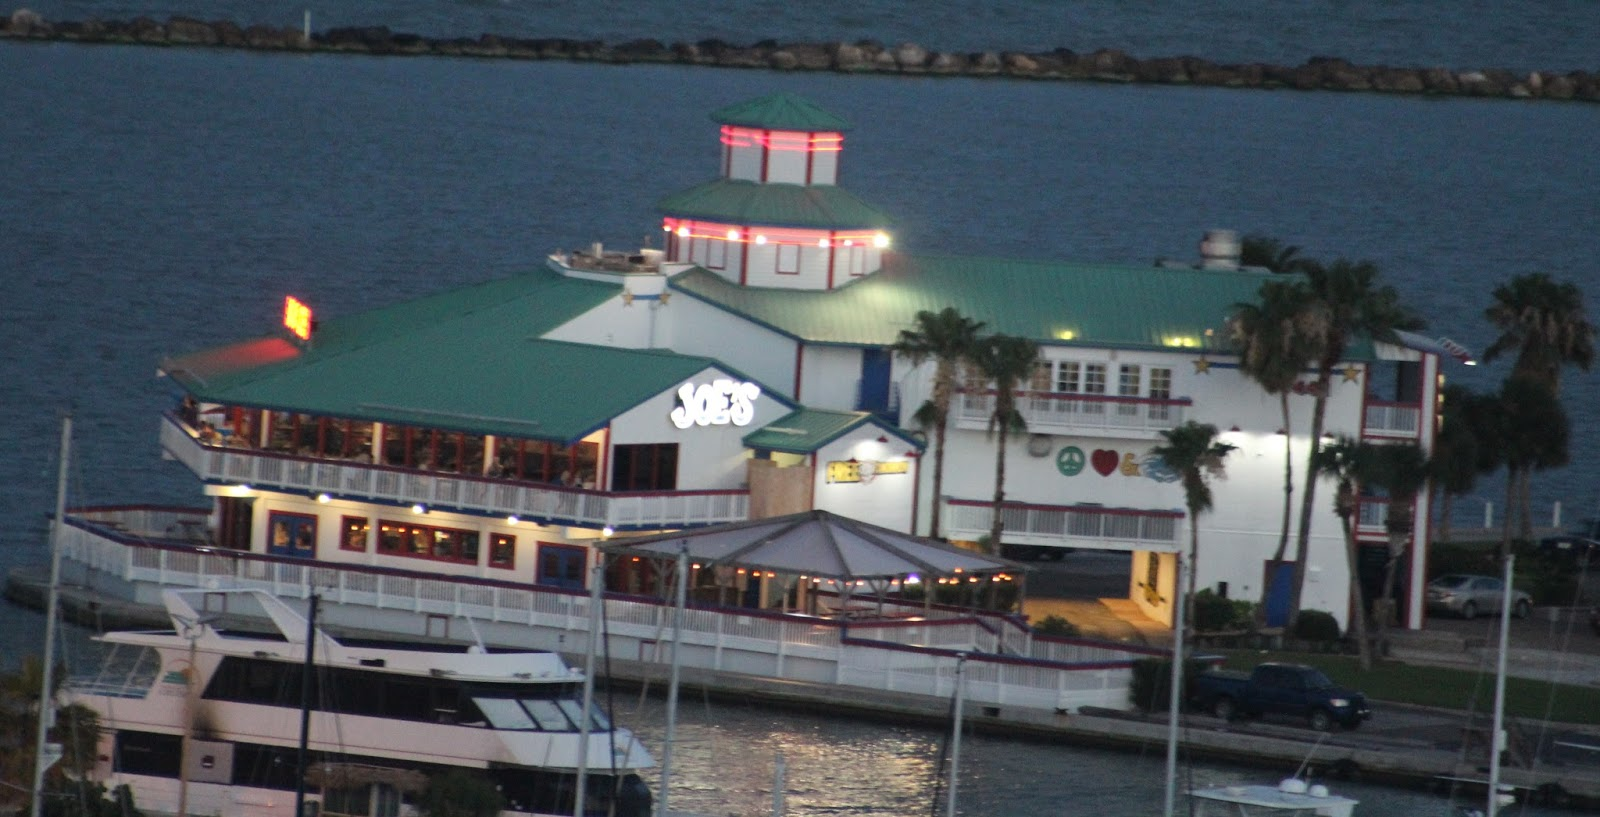 Above Joe S Crab Shack The Former Lighthouse Restaurant Corpus Christi Marina 20 June 2016